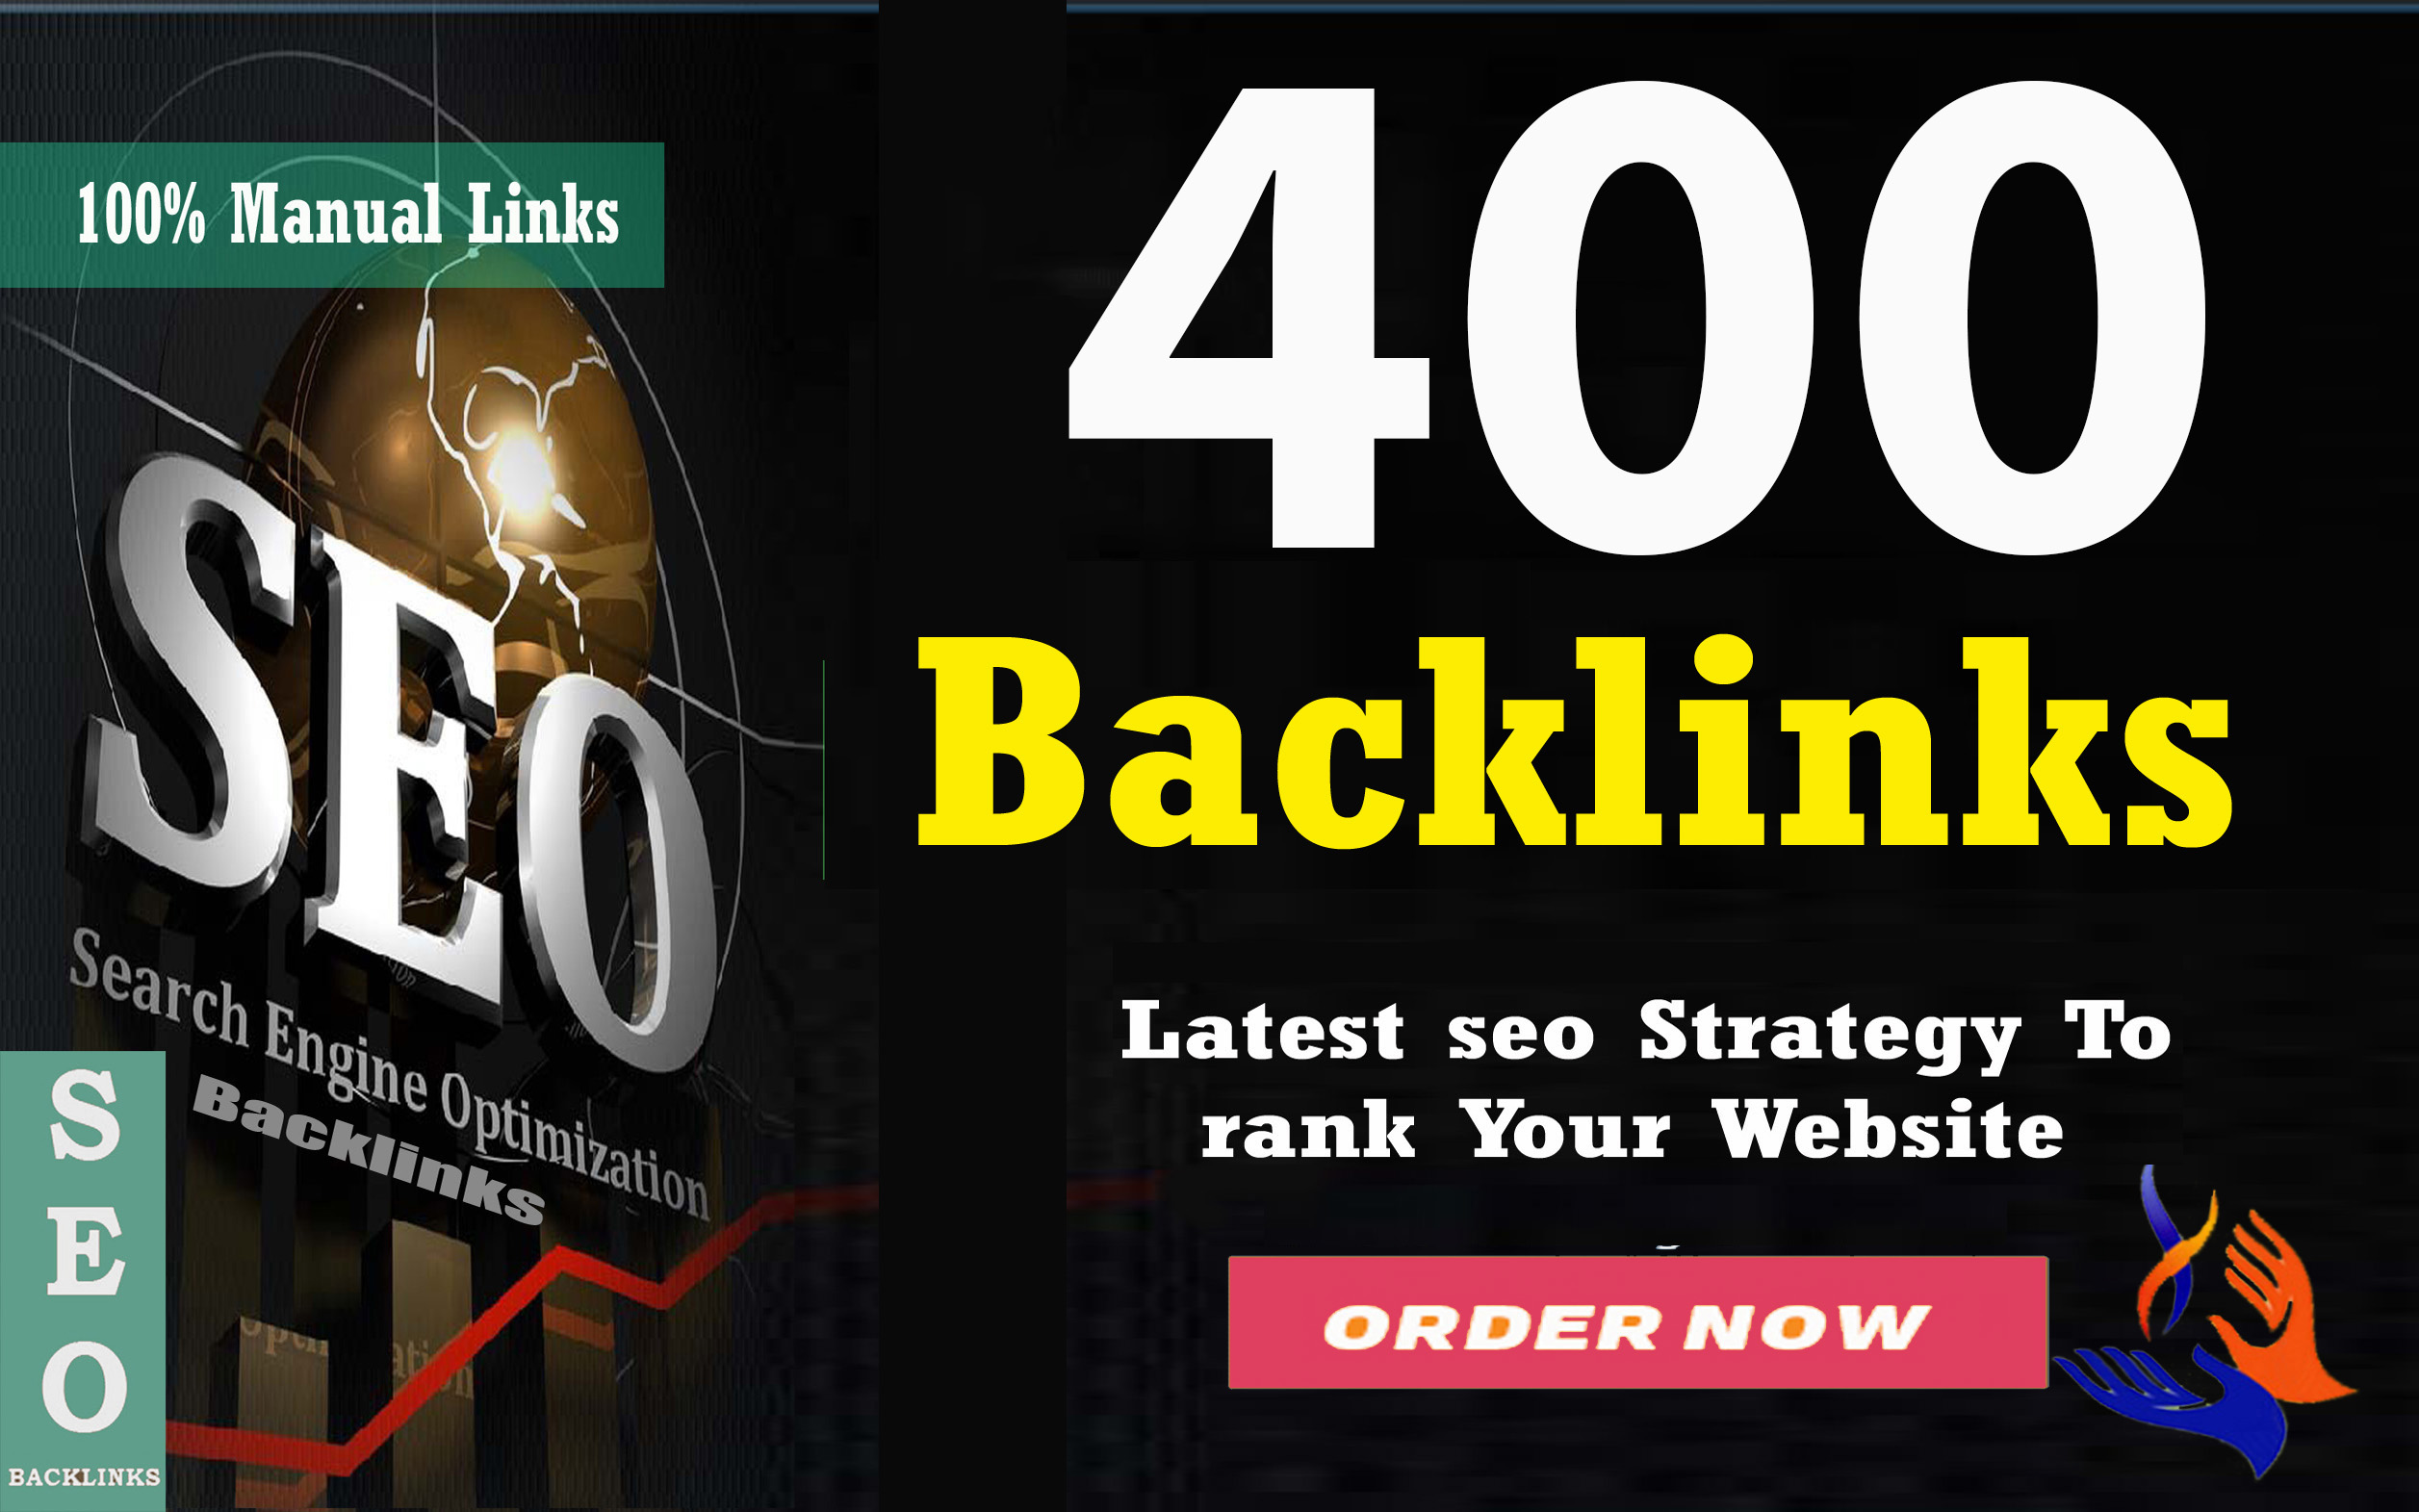 Get 400 Web 2.0 pbn Backlinks Latest seo Strategy To rank your website ranking